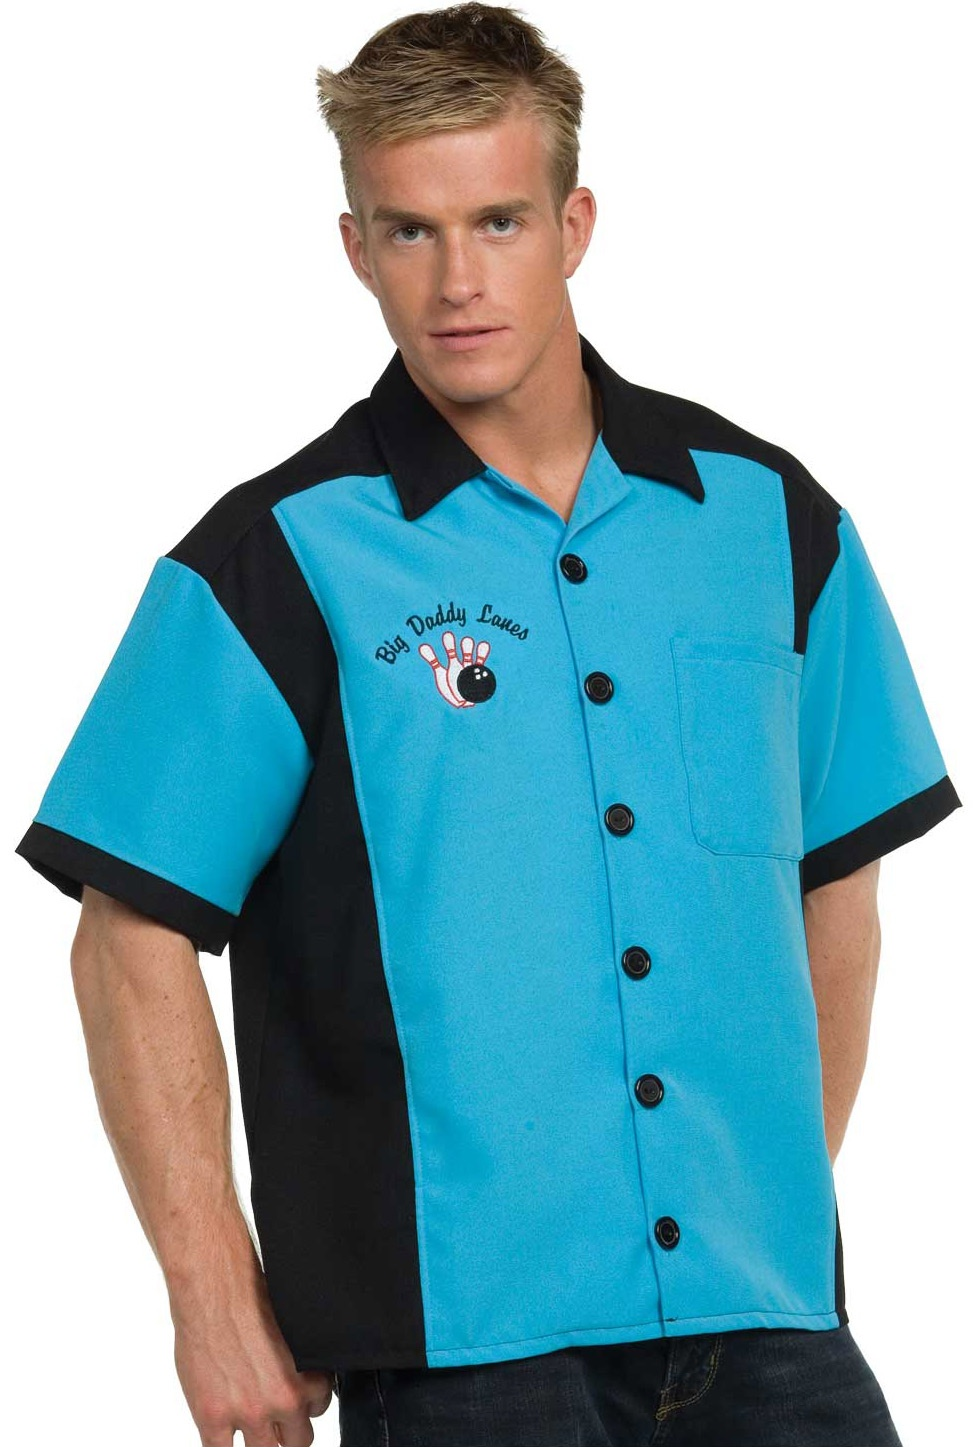 Home gt;gt; Sports Costumes gt;gt; Mens Turquoise Bowling 50s Adult Costume